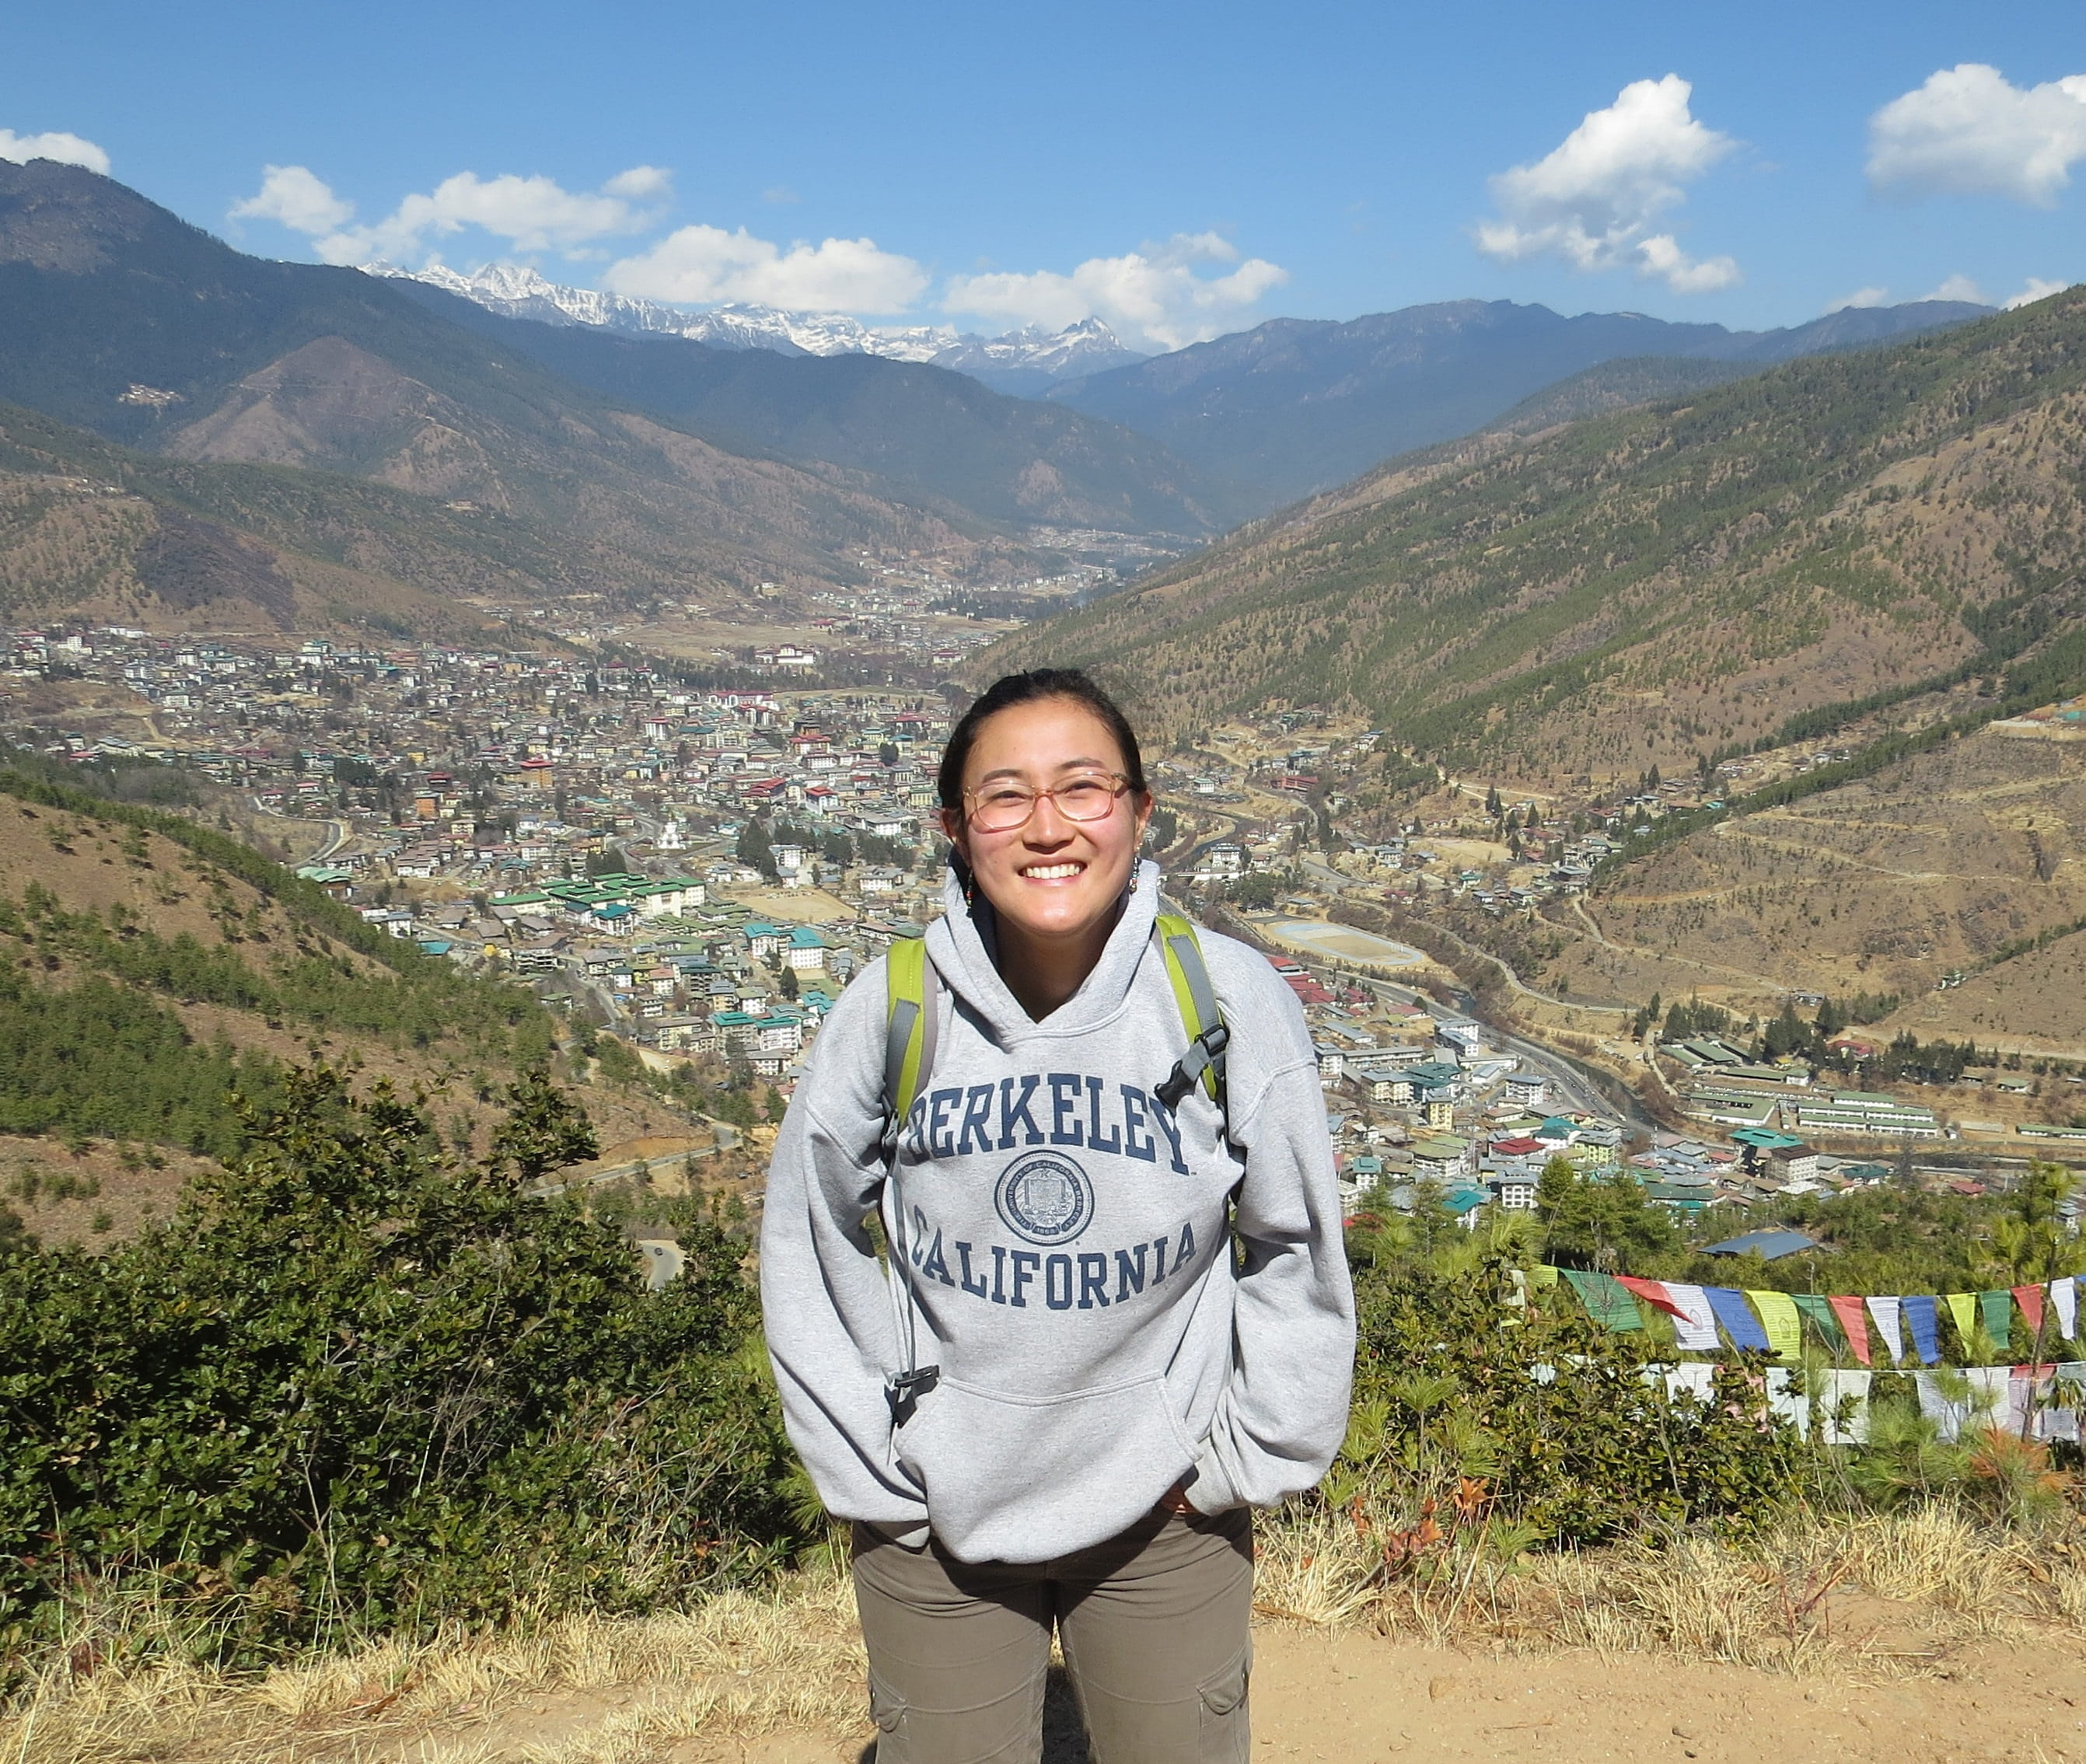 Yuko standing with mountains and blue sky in background